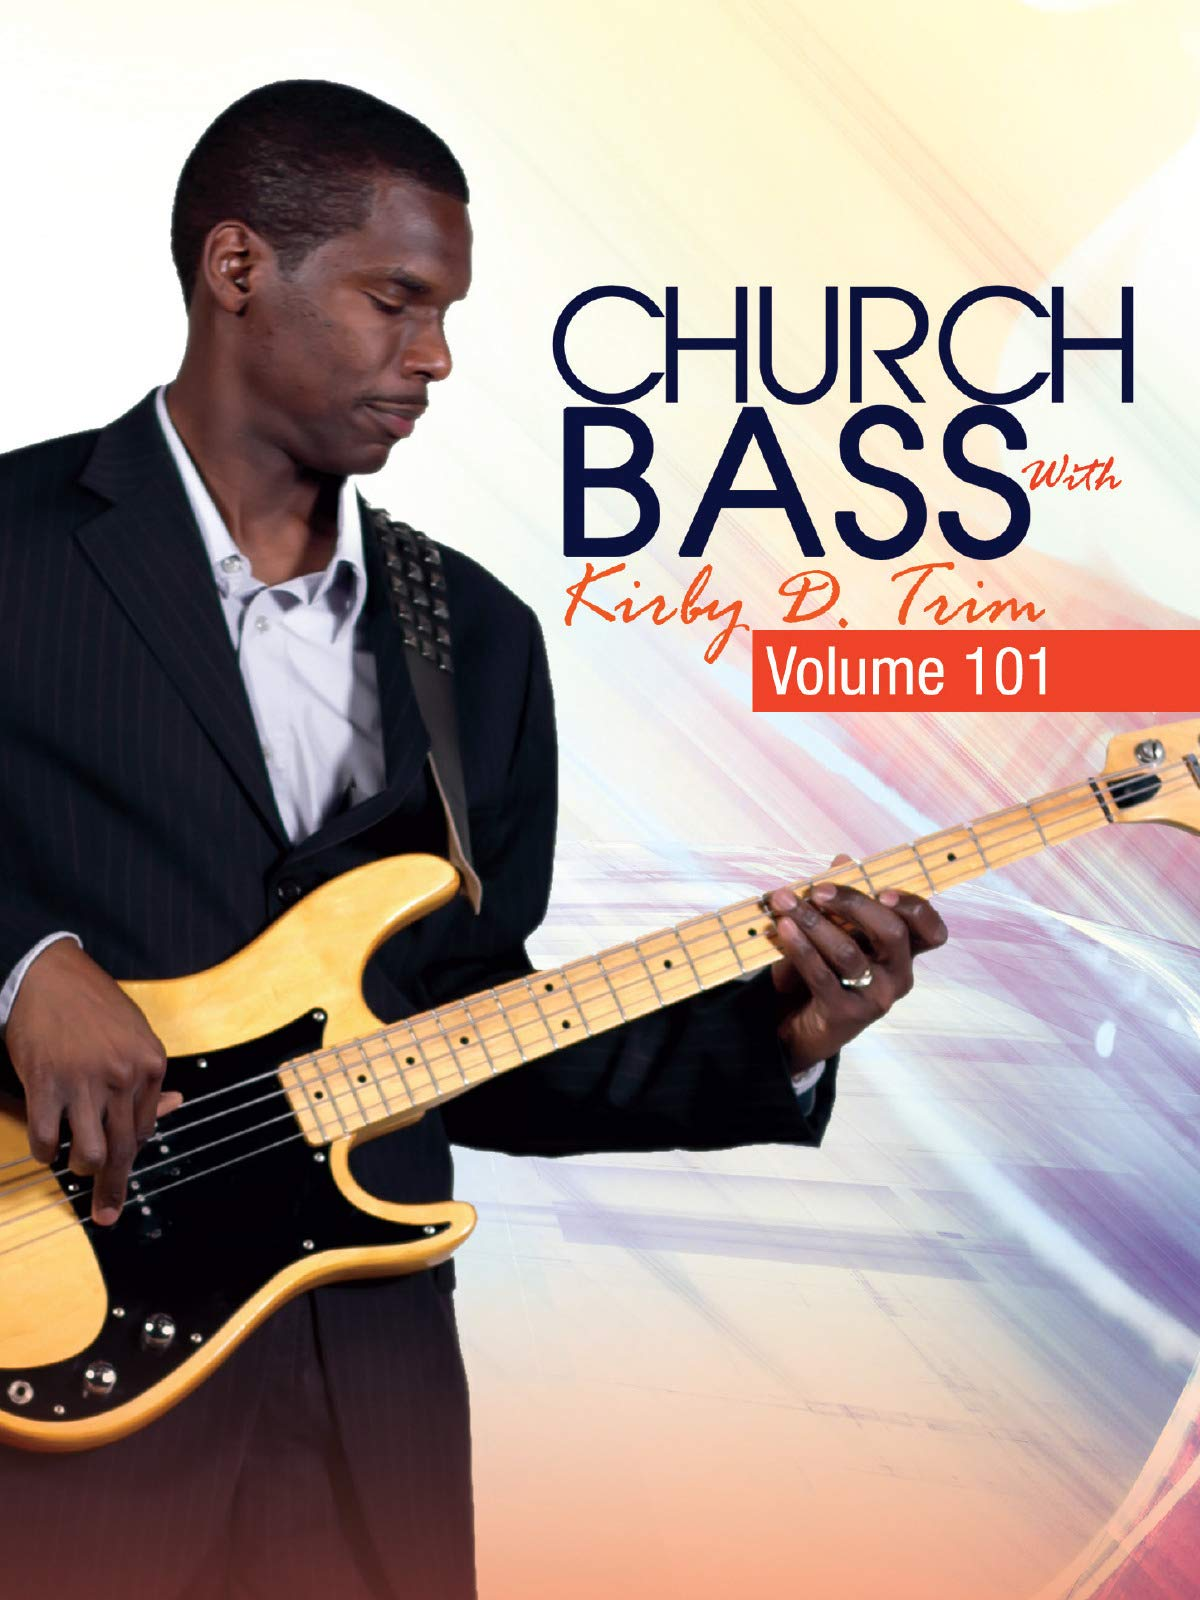 Church Bass with Kirby D. Trim - Vol. 101